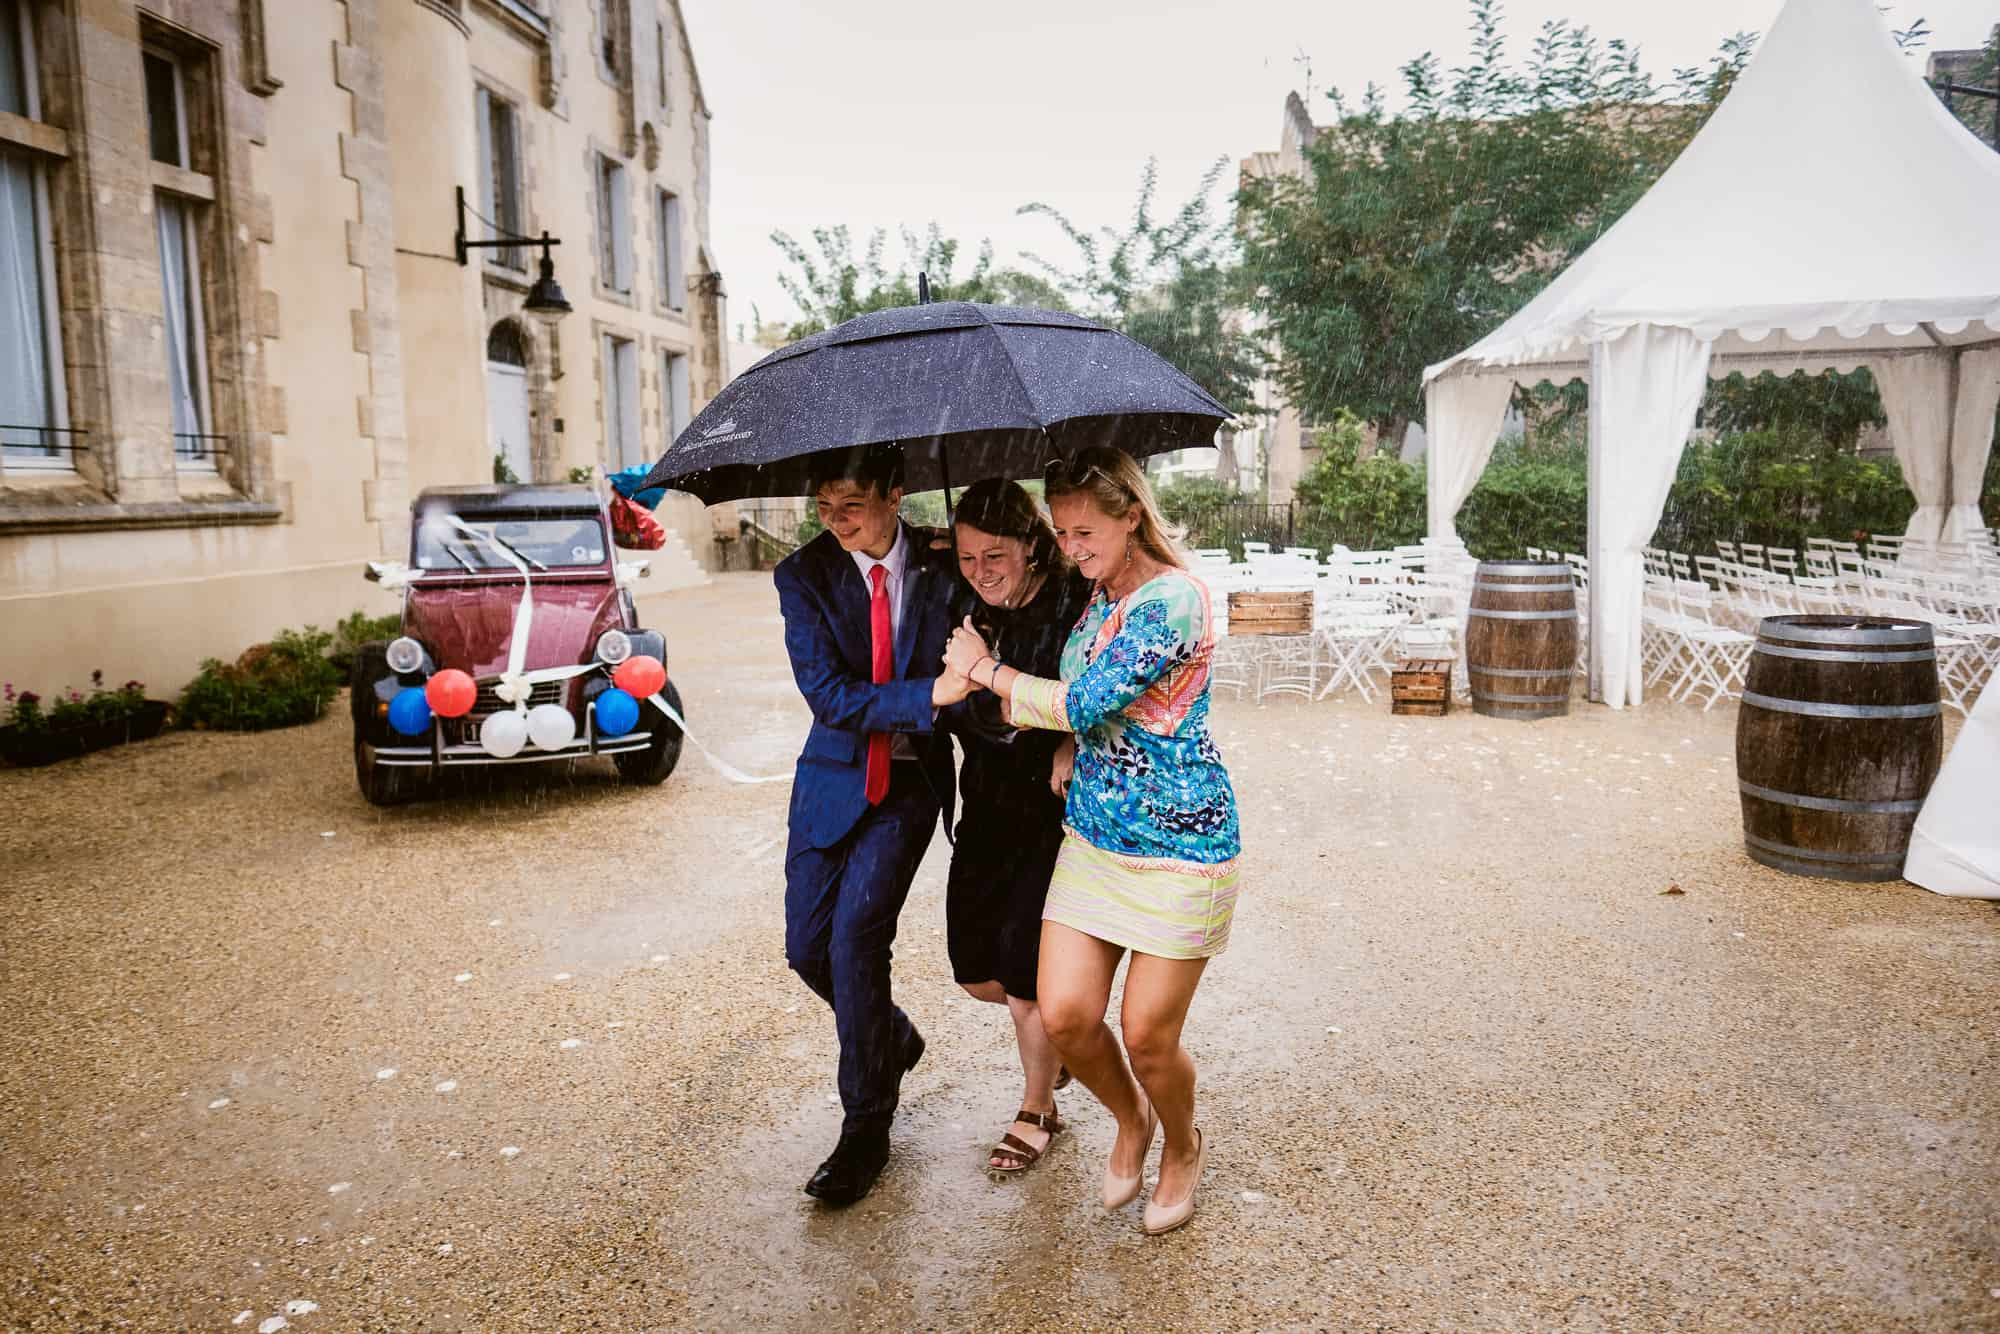 chateau-carrasses-france-wedding-photography-0050